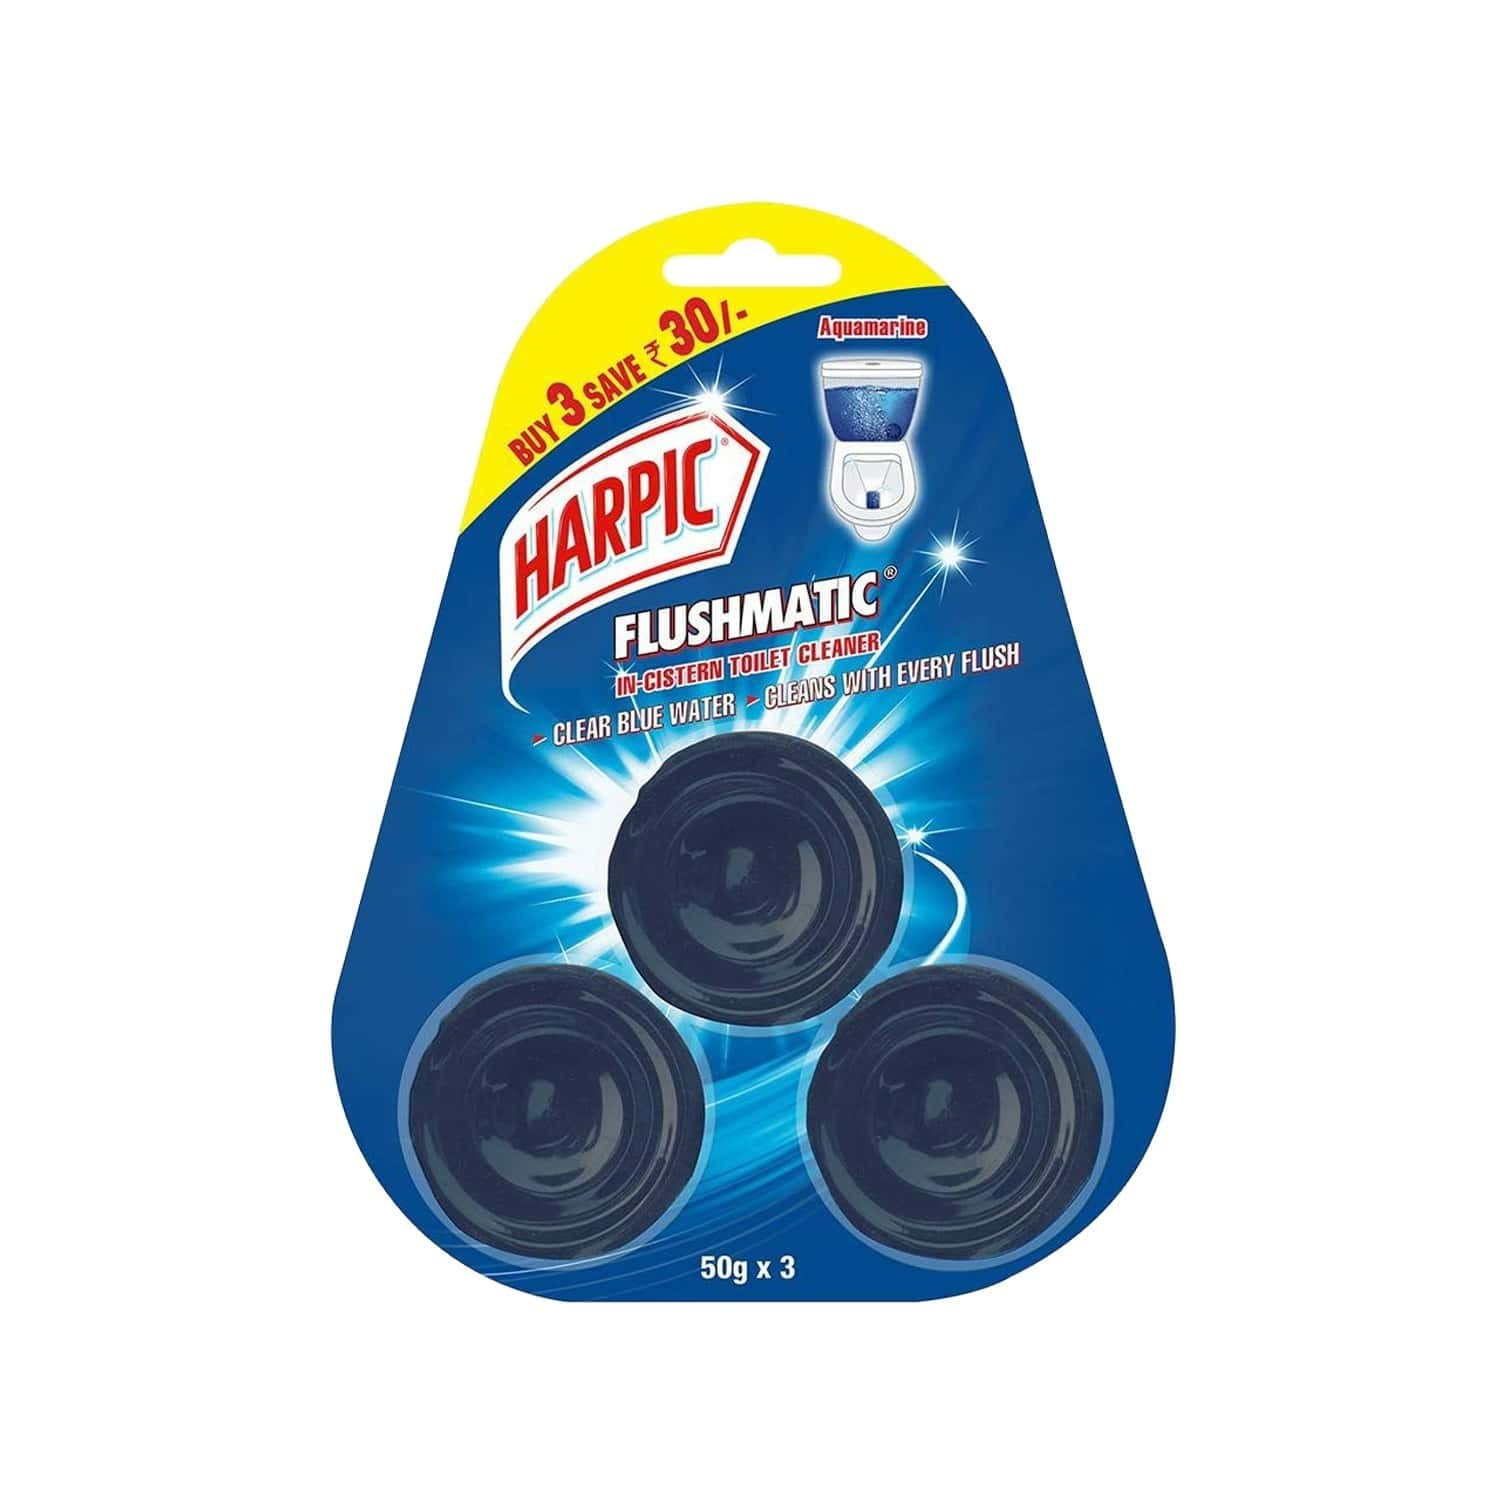 Harpic Flushmatic Aquamarine Toilet Block (pack Of 3) Packet Of 50 G